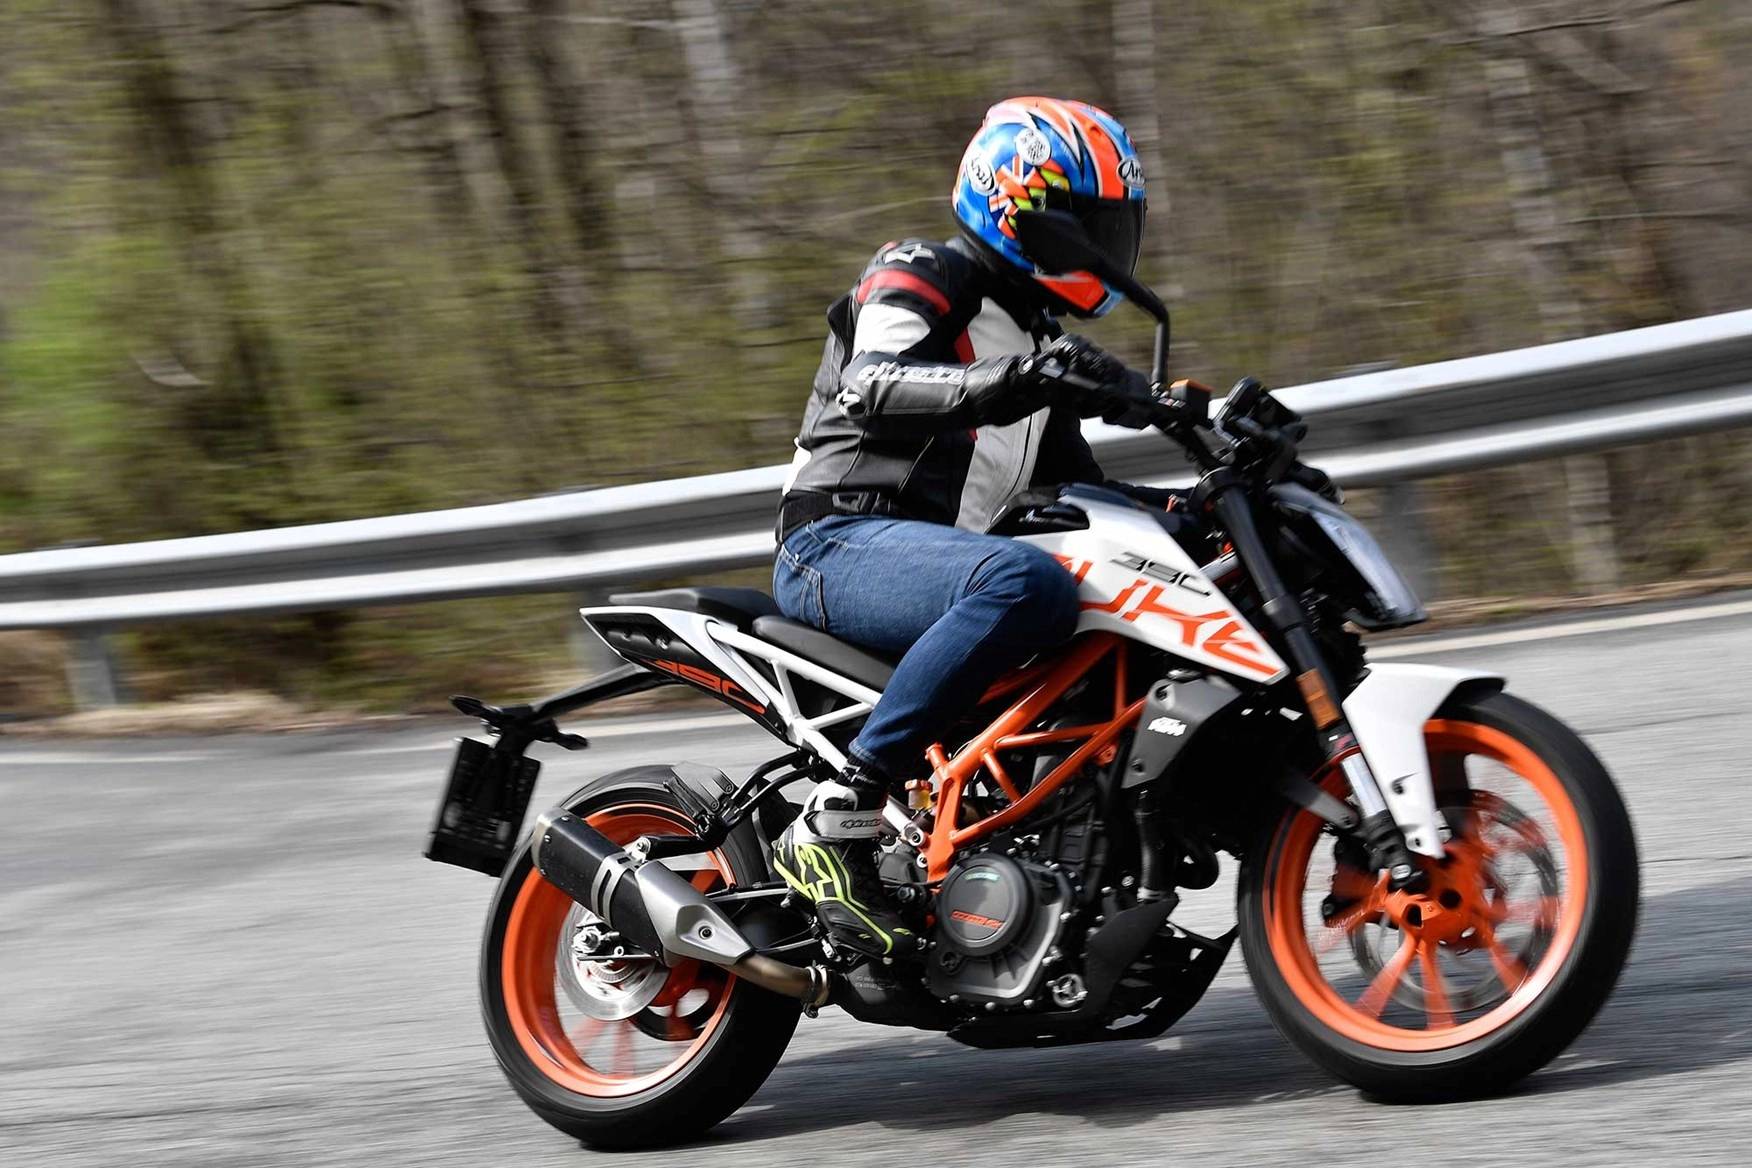 riding-KTM-with-dark-visor